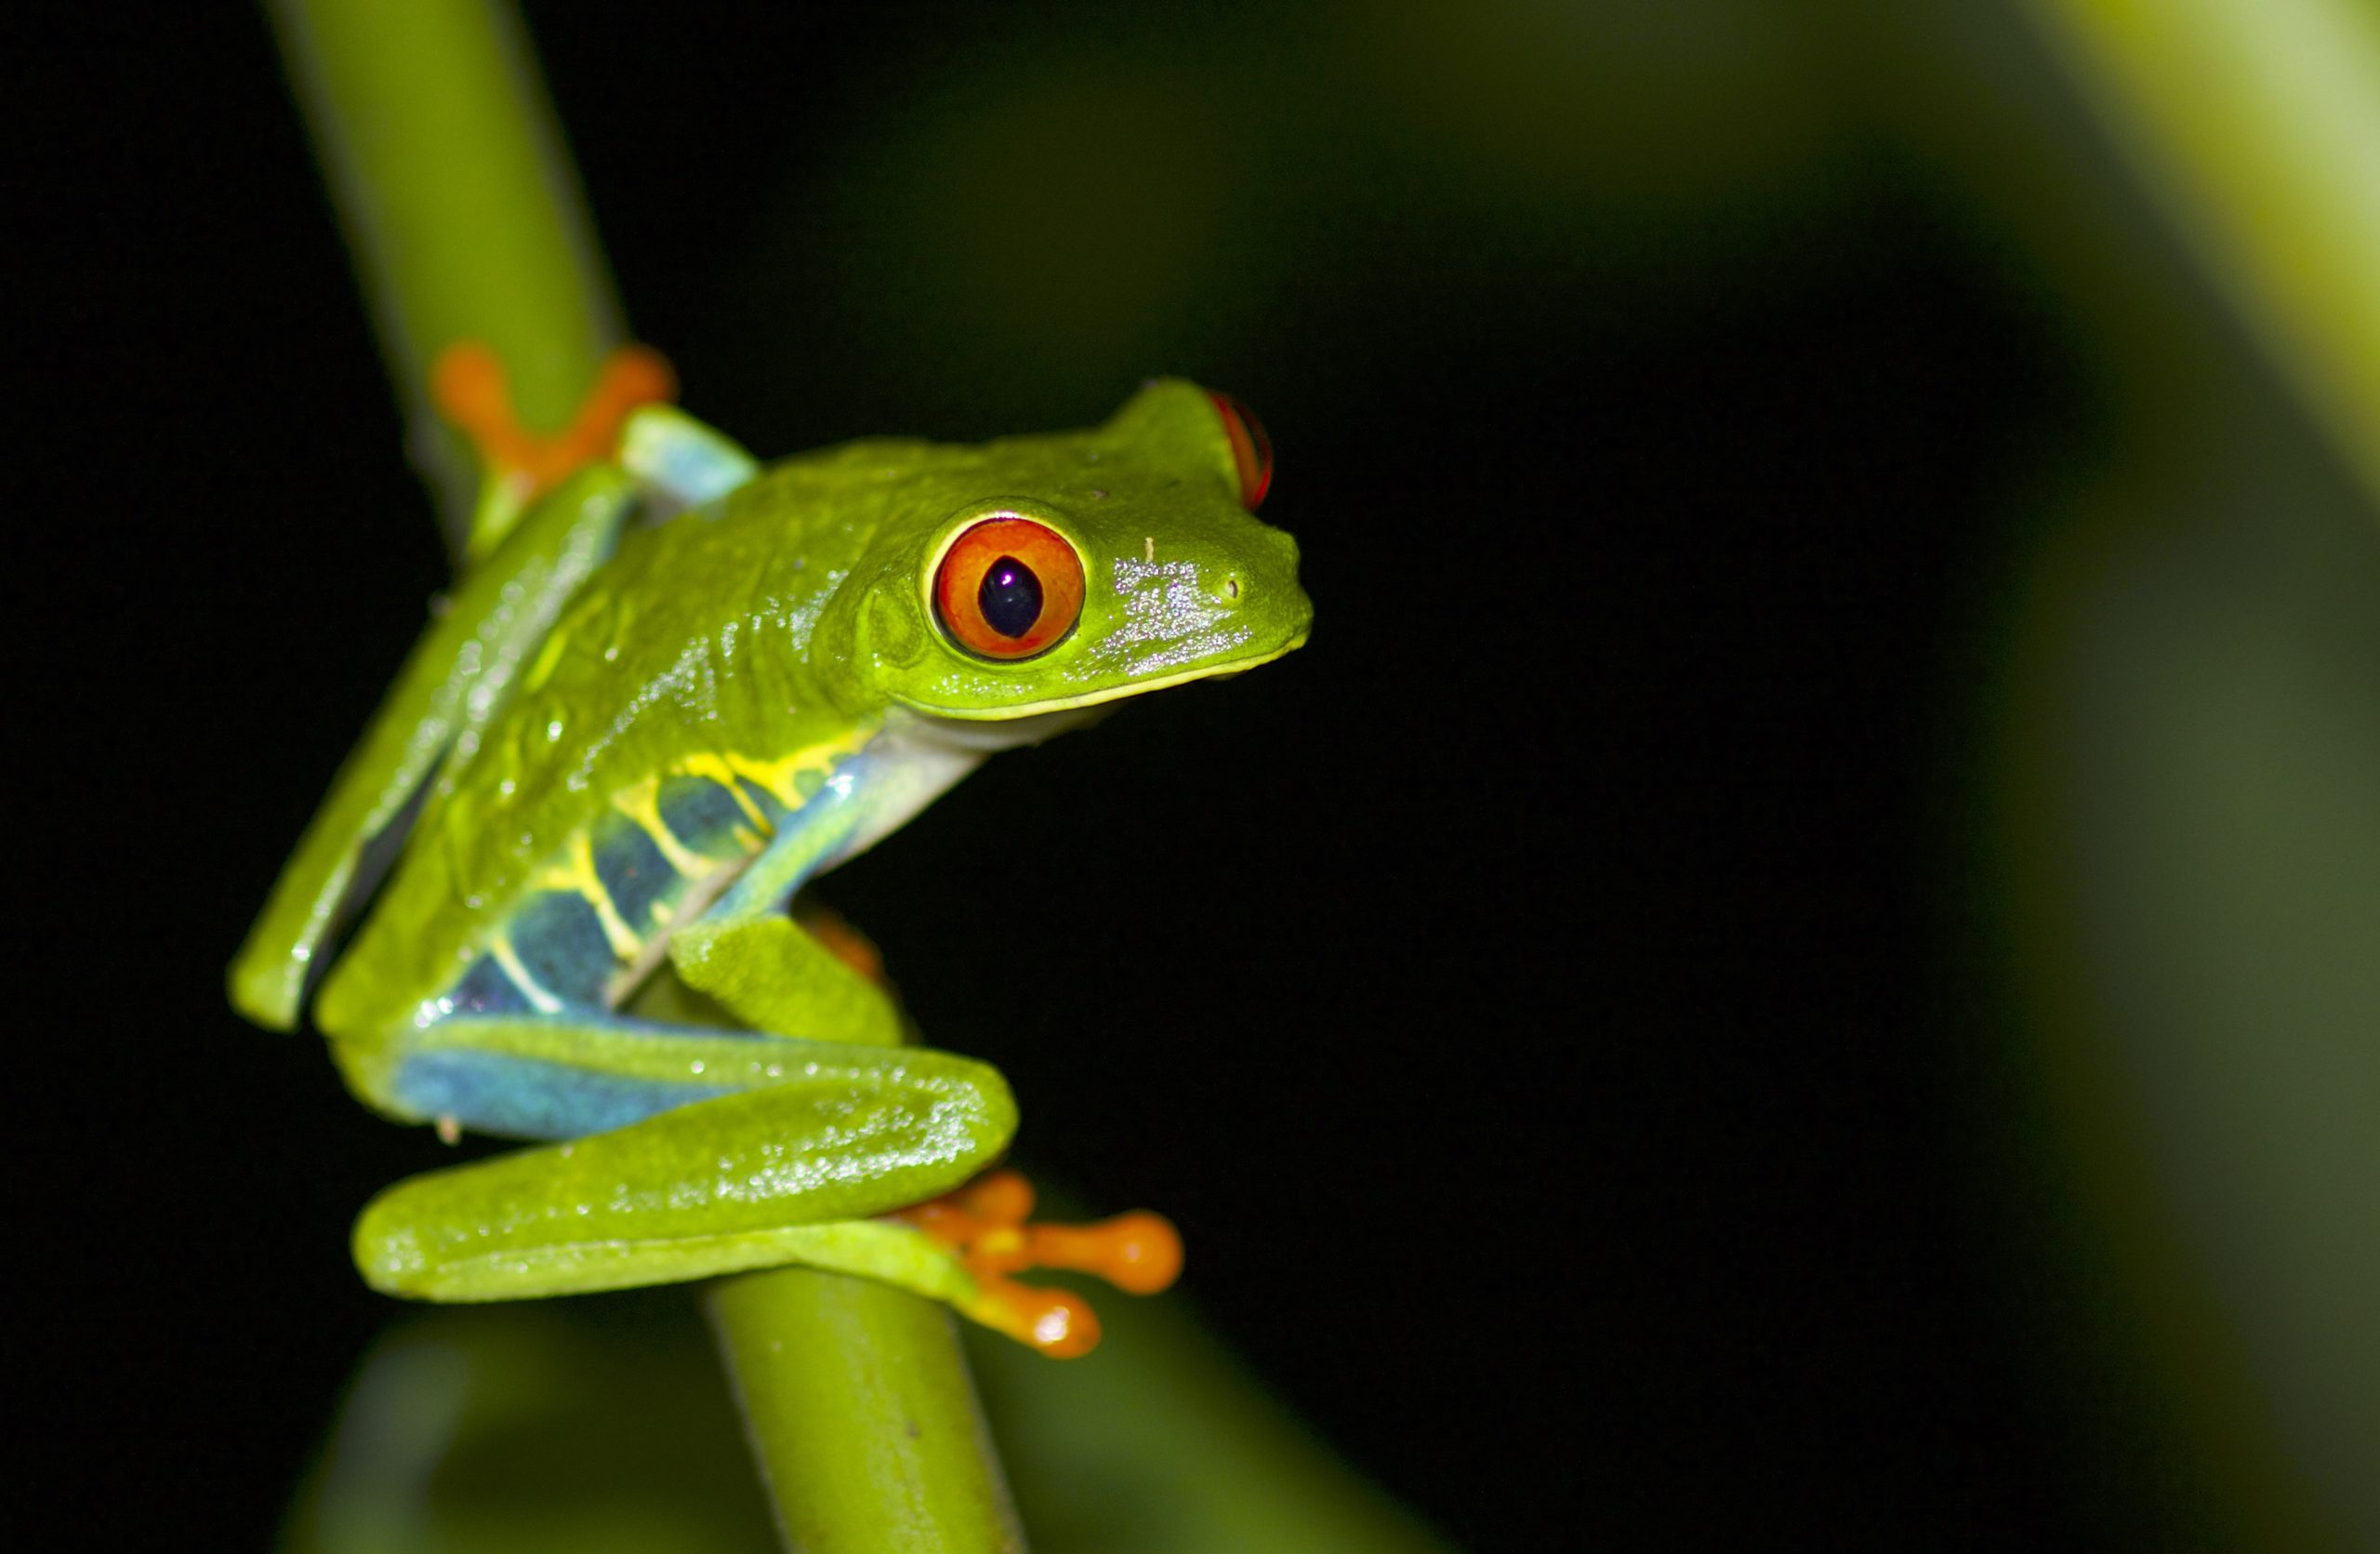 Costa Rica tourism brings you close to a Red-Eyed Tree Frog